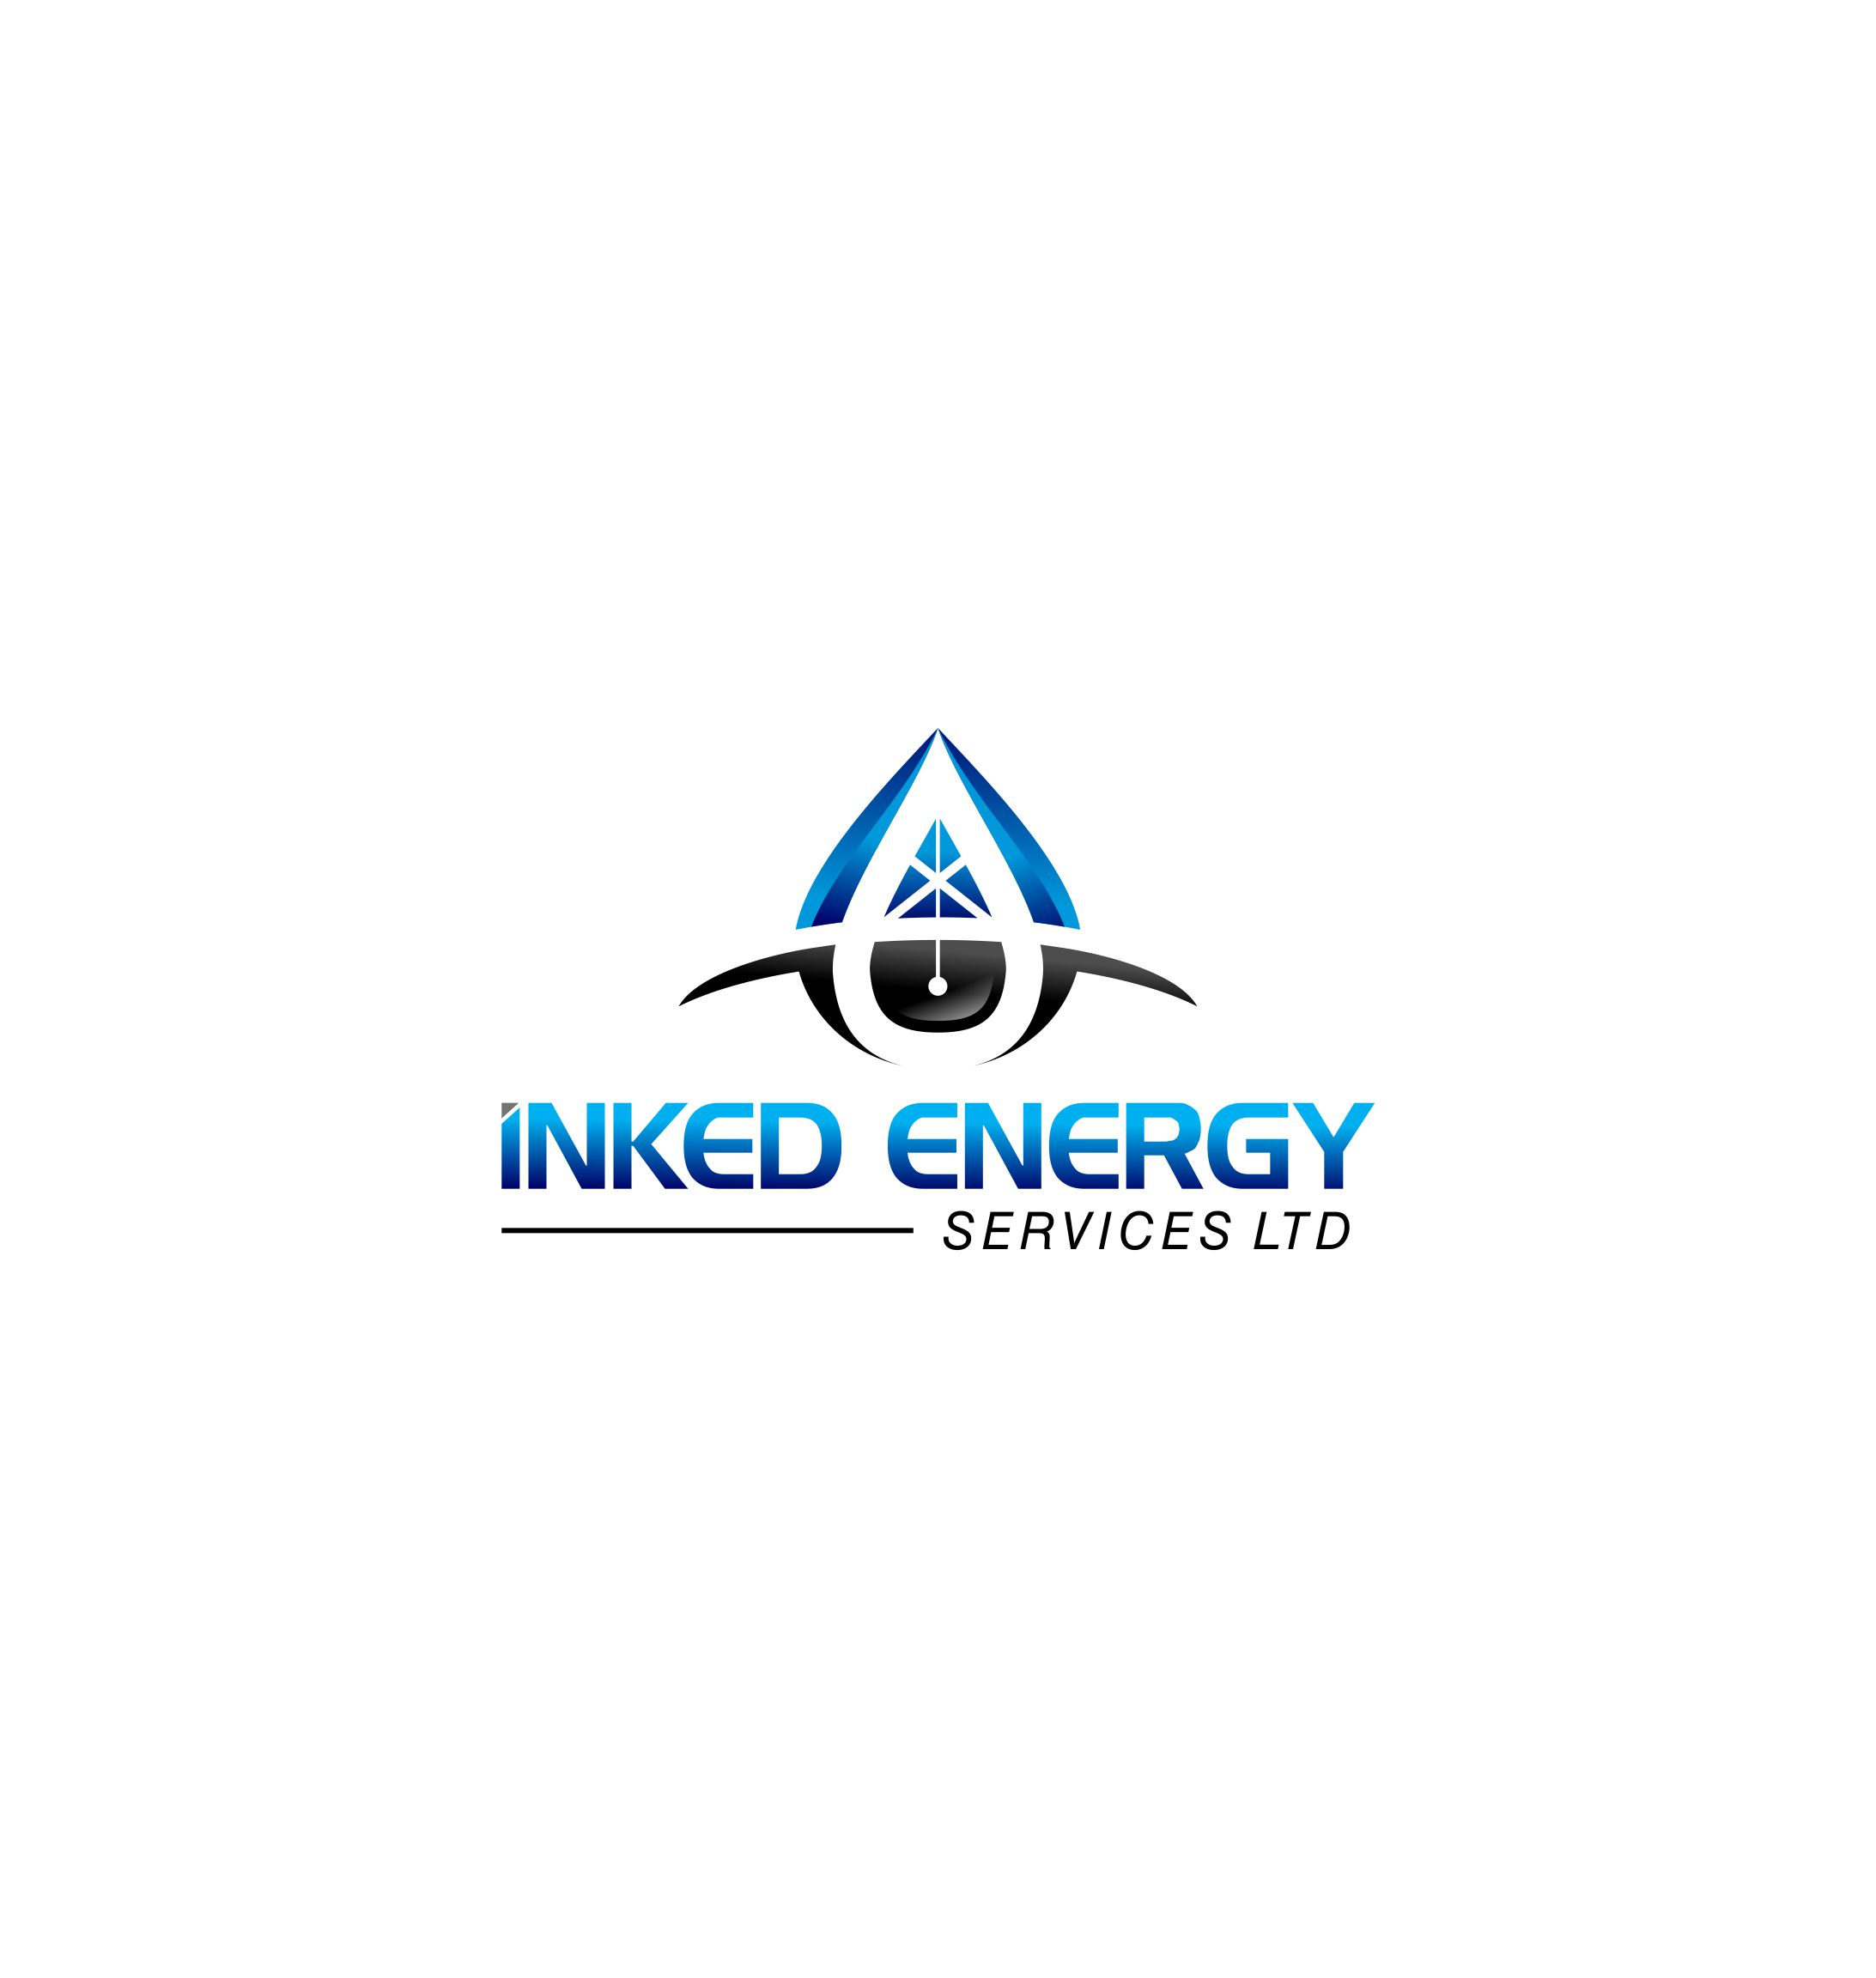 Logo Design by Raymond Garcia - Entry No. 160 in the Logo Design Contest Creative Logo Design for INKED ENERGY SERVICES LTD.